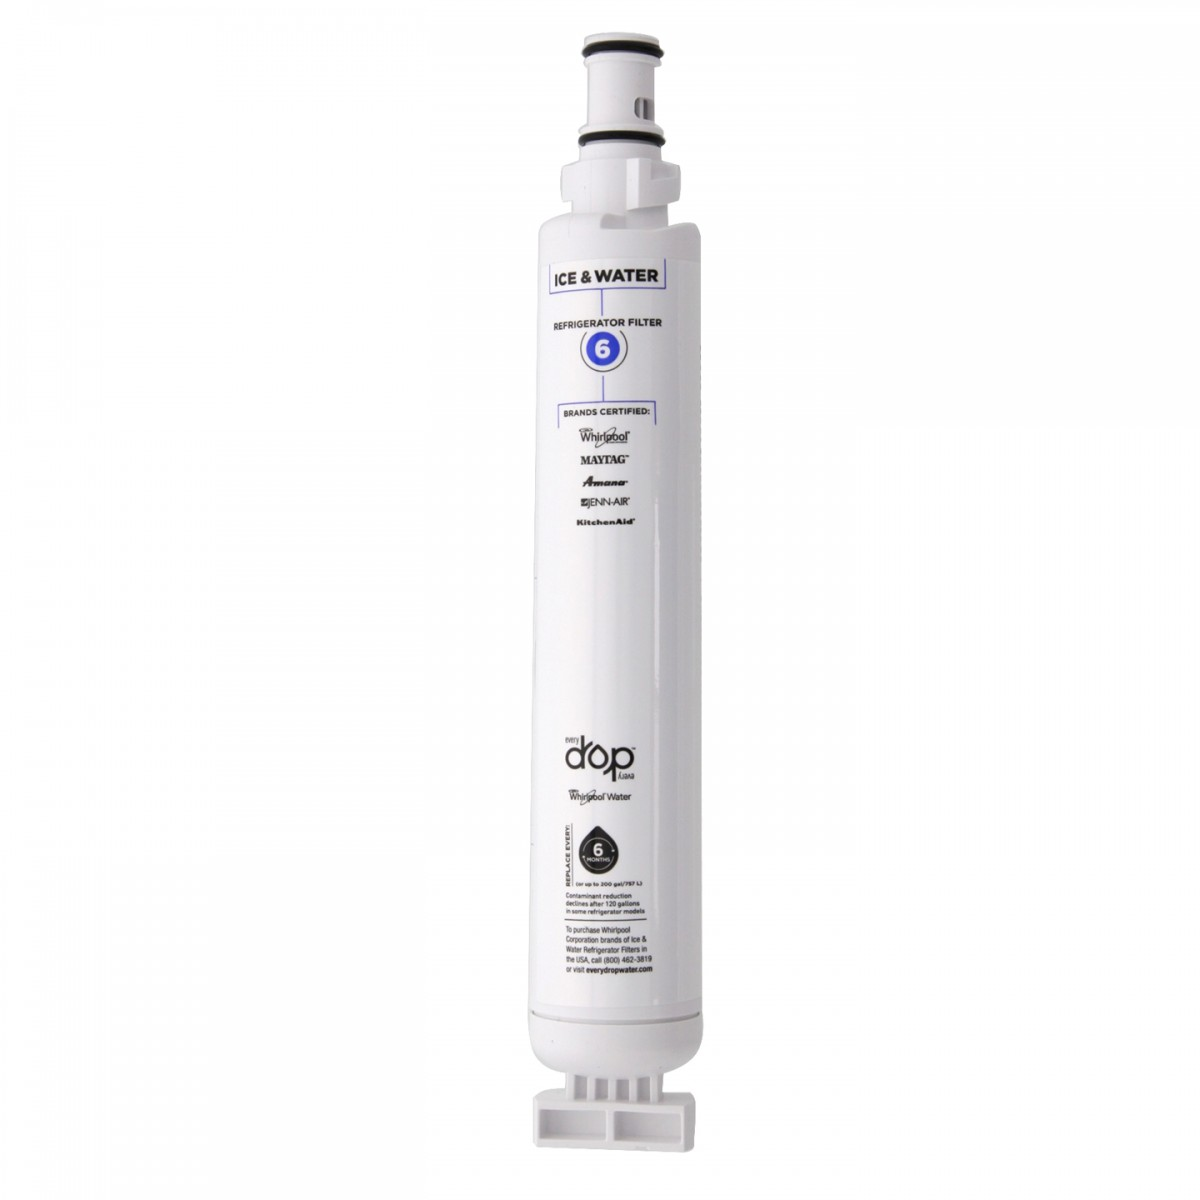 EveryDrop Ice and Water Refrigerator Filter 6 by Whirlpool